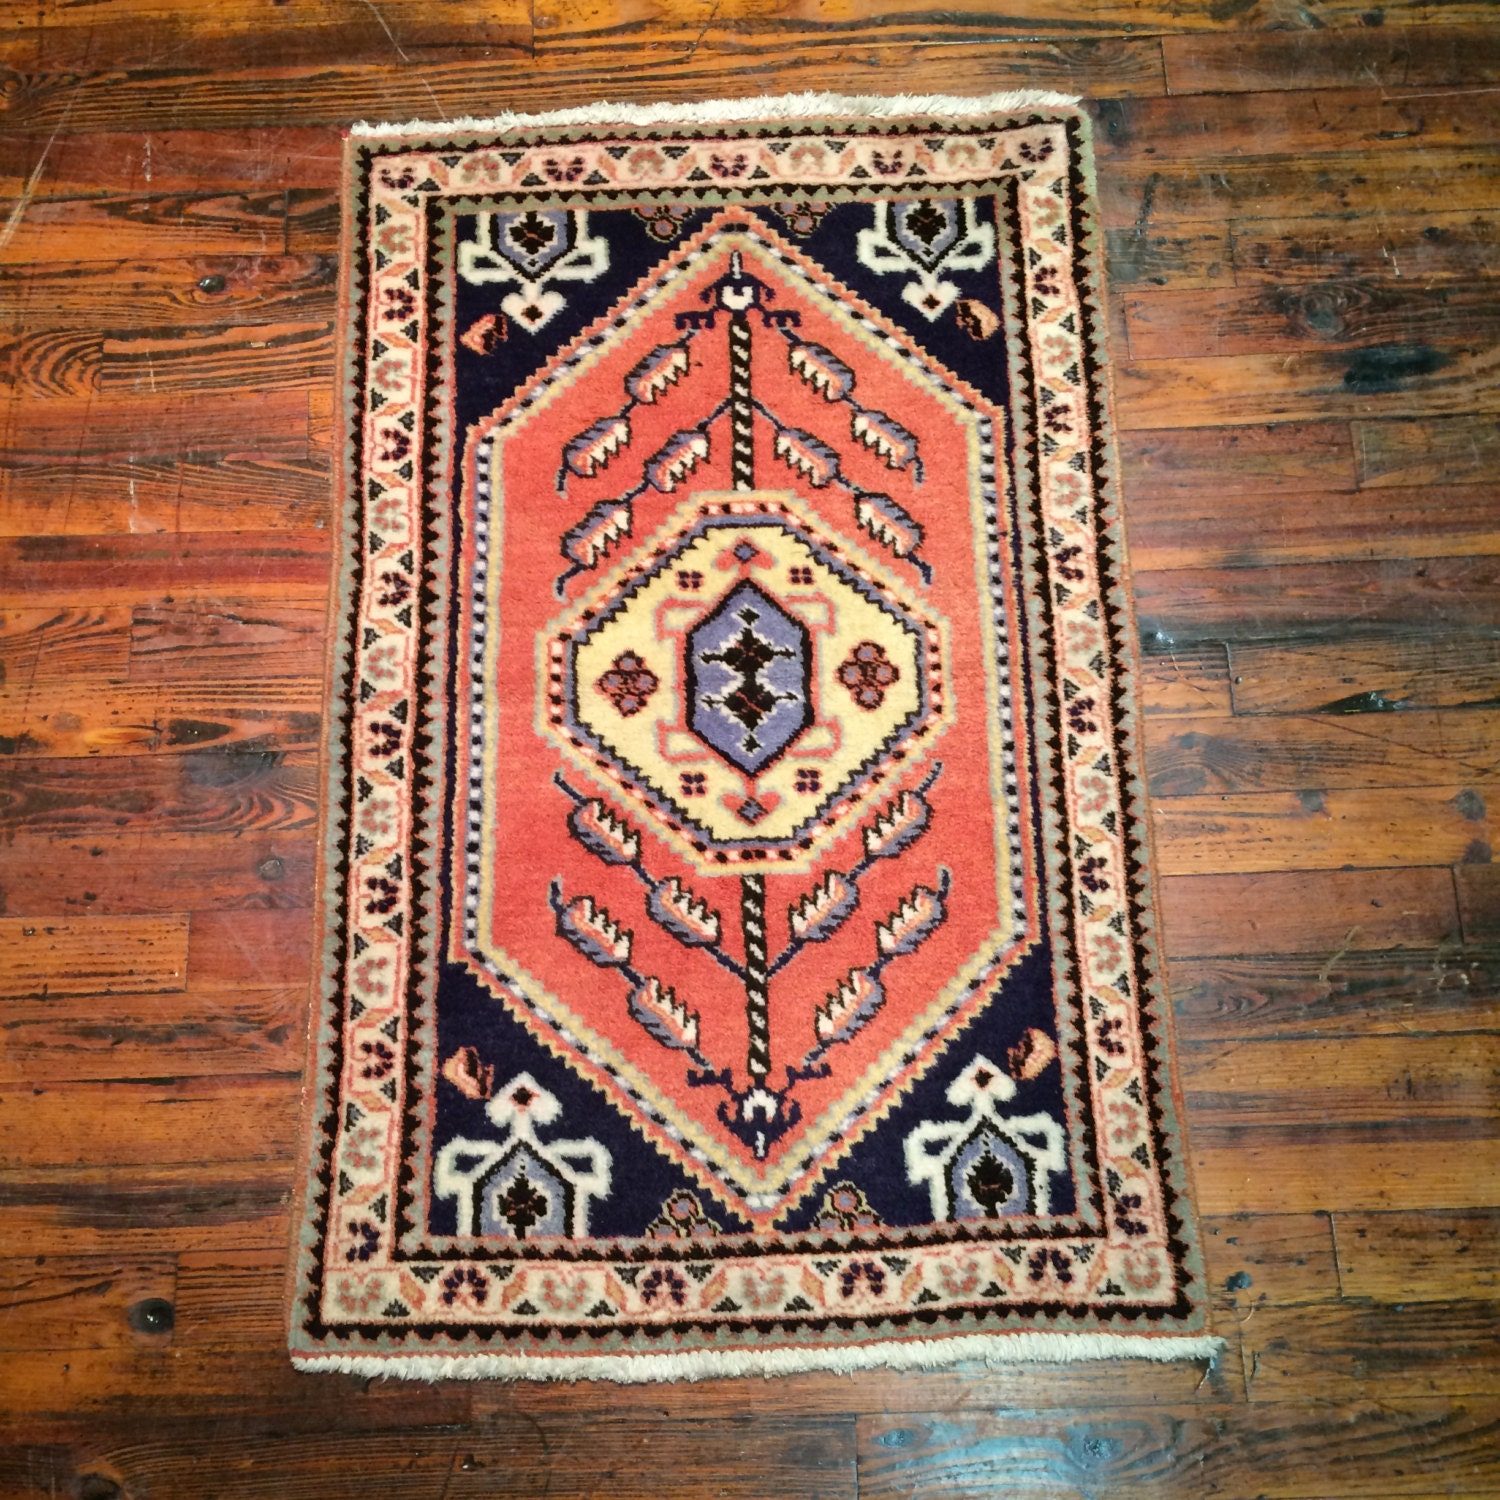 Oriental Rugs Out Of Style: Vintage Persian Rug Lilian Oriental Rug / Floral